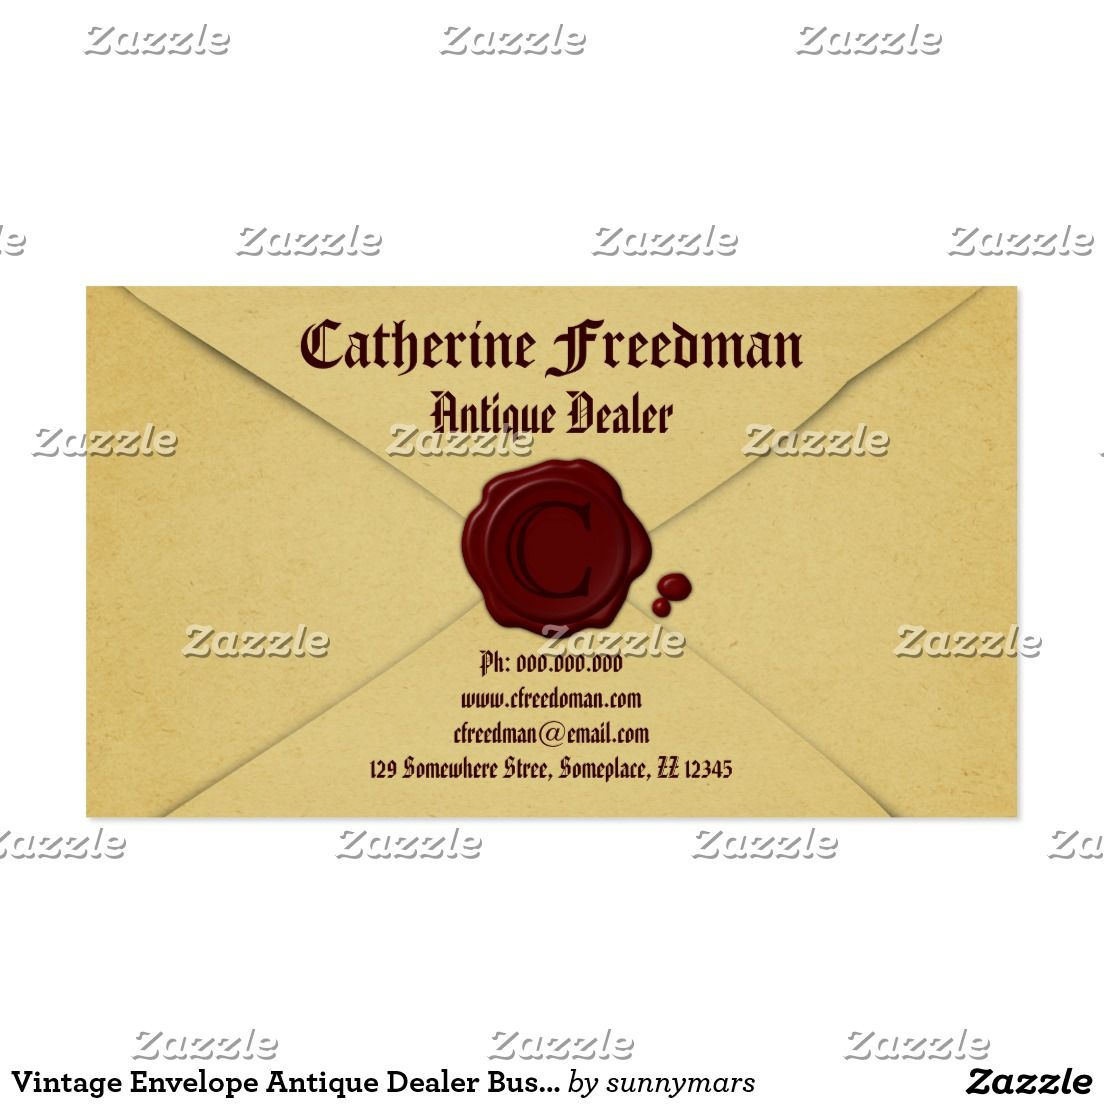 Vintage Envelope Antique Dealer Business Cards | Antique Shop Ideas ...